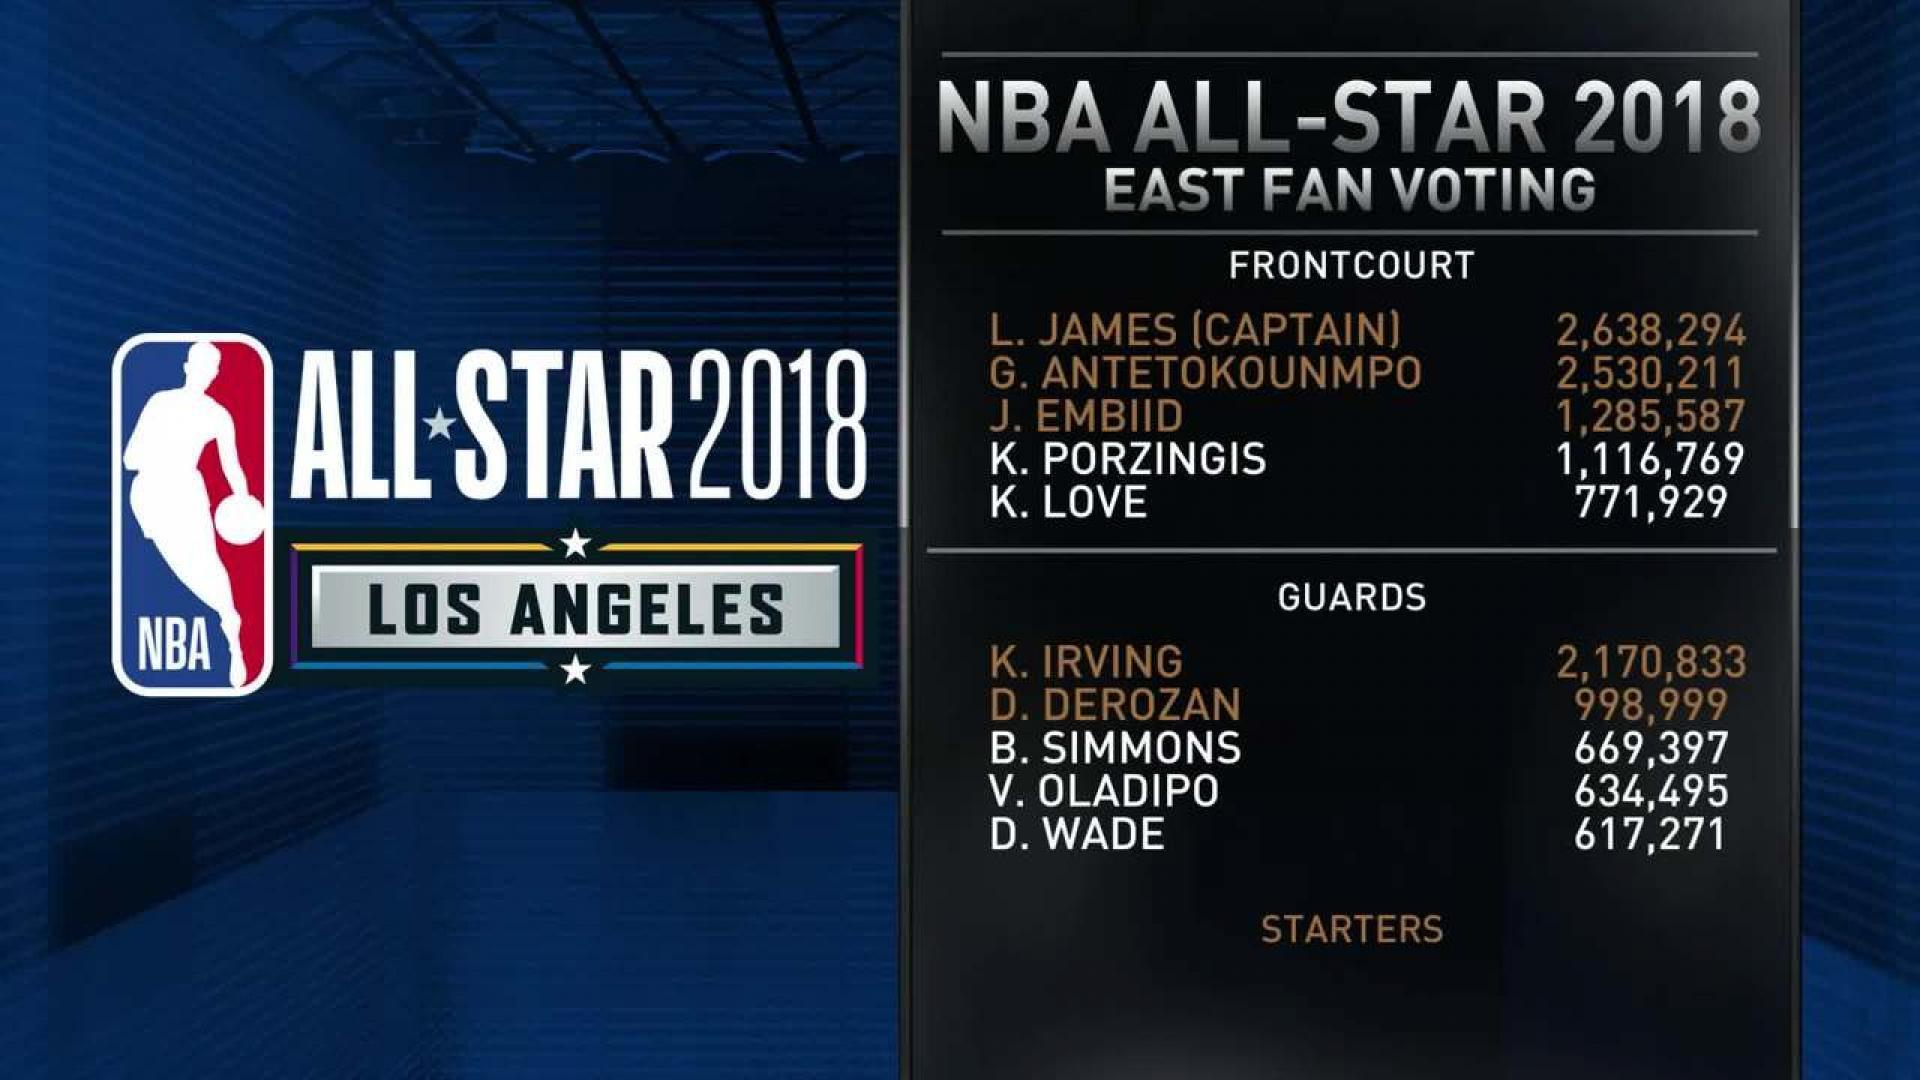 Kristaps Porzingis and Karl-Anthony Towns among All-Star reserves